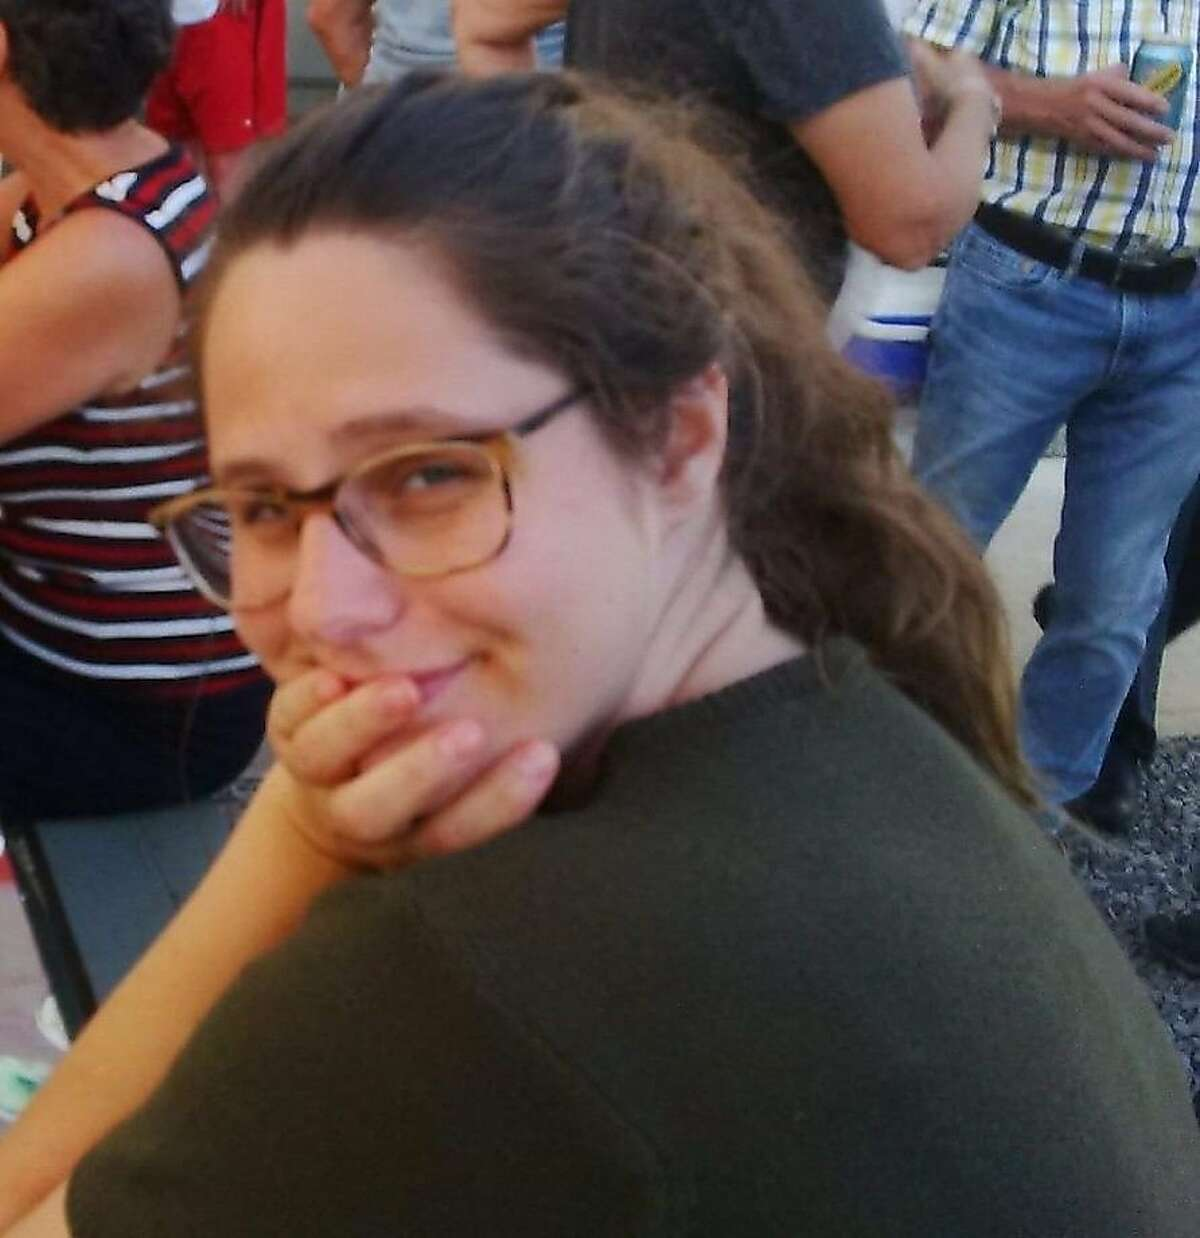 San Francisco police say Audrey Carey, 23, of Quebec, Canada, was found dead in Golden Gate Park after the first day of the Hardly Strictly Bluegrass festival on Friday, Oct. 2, 2015.